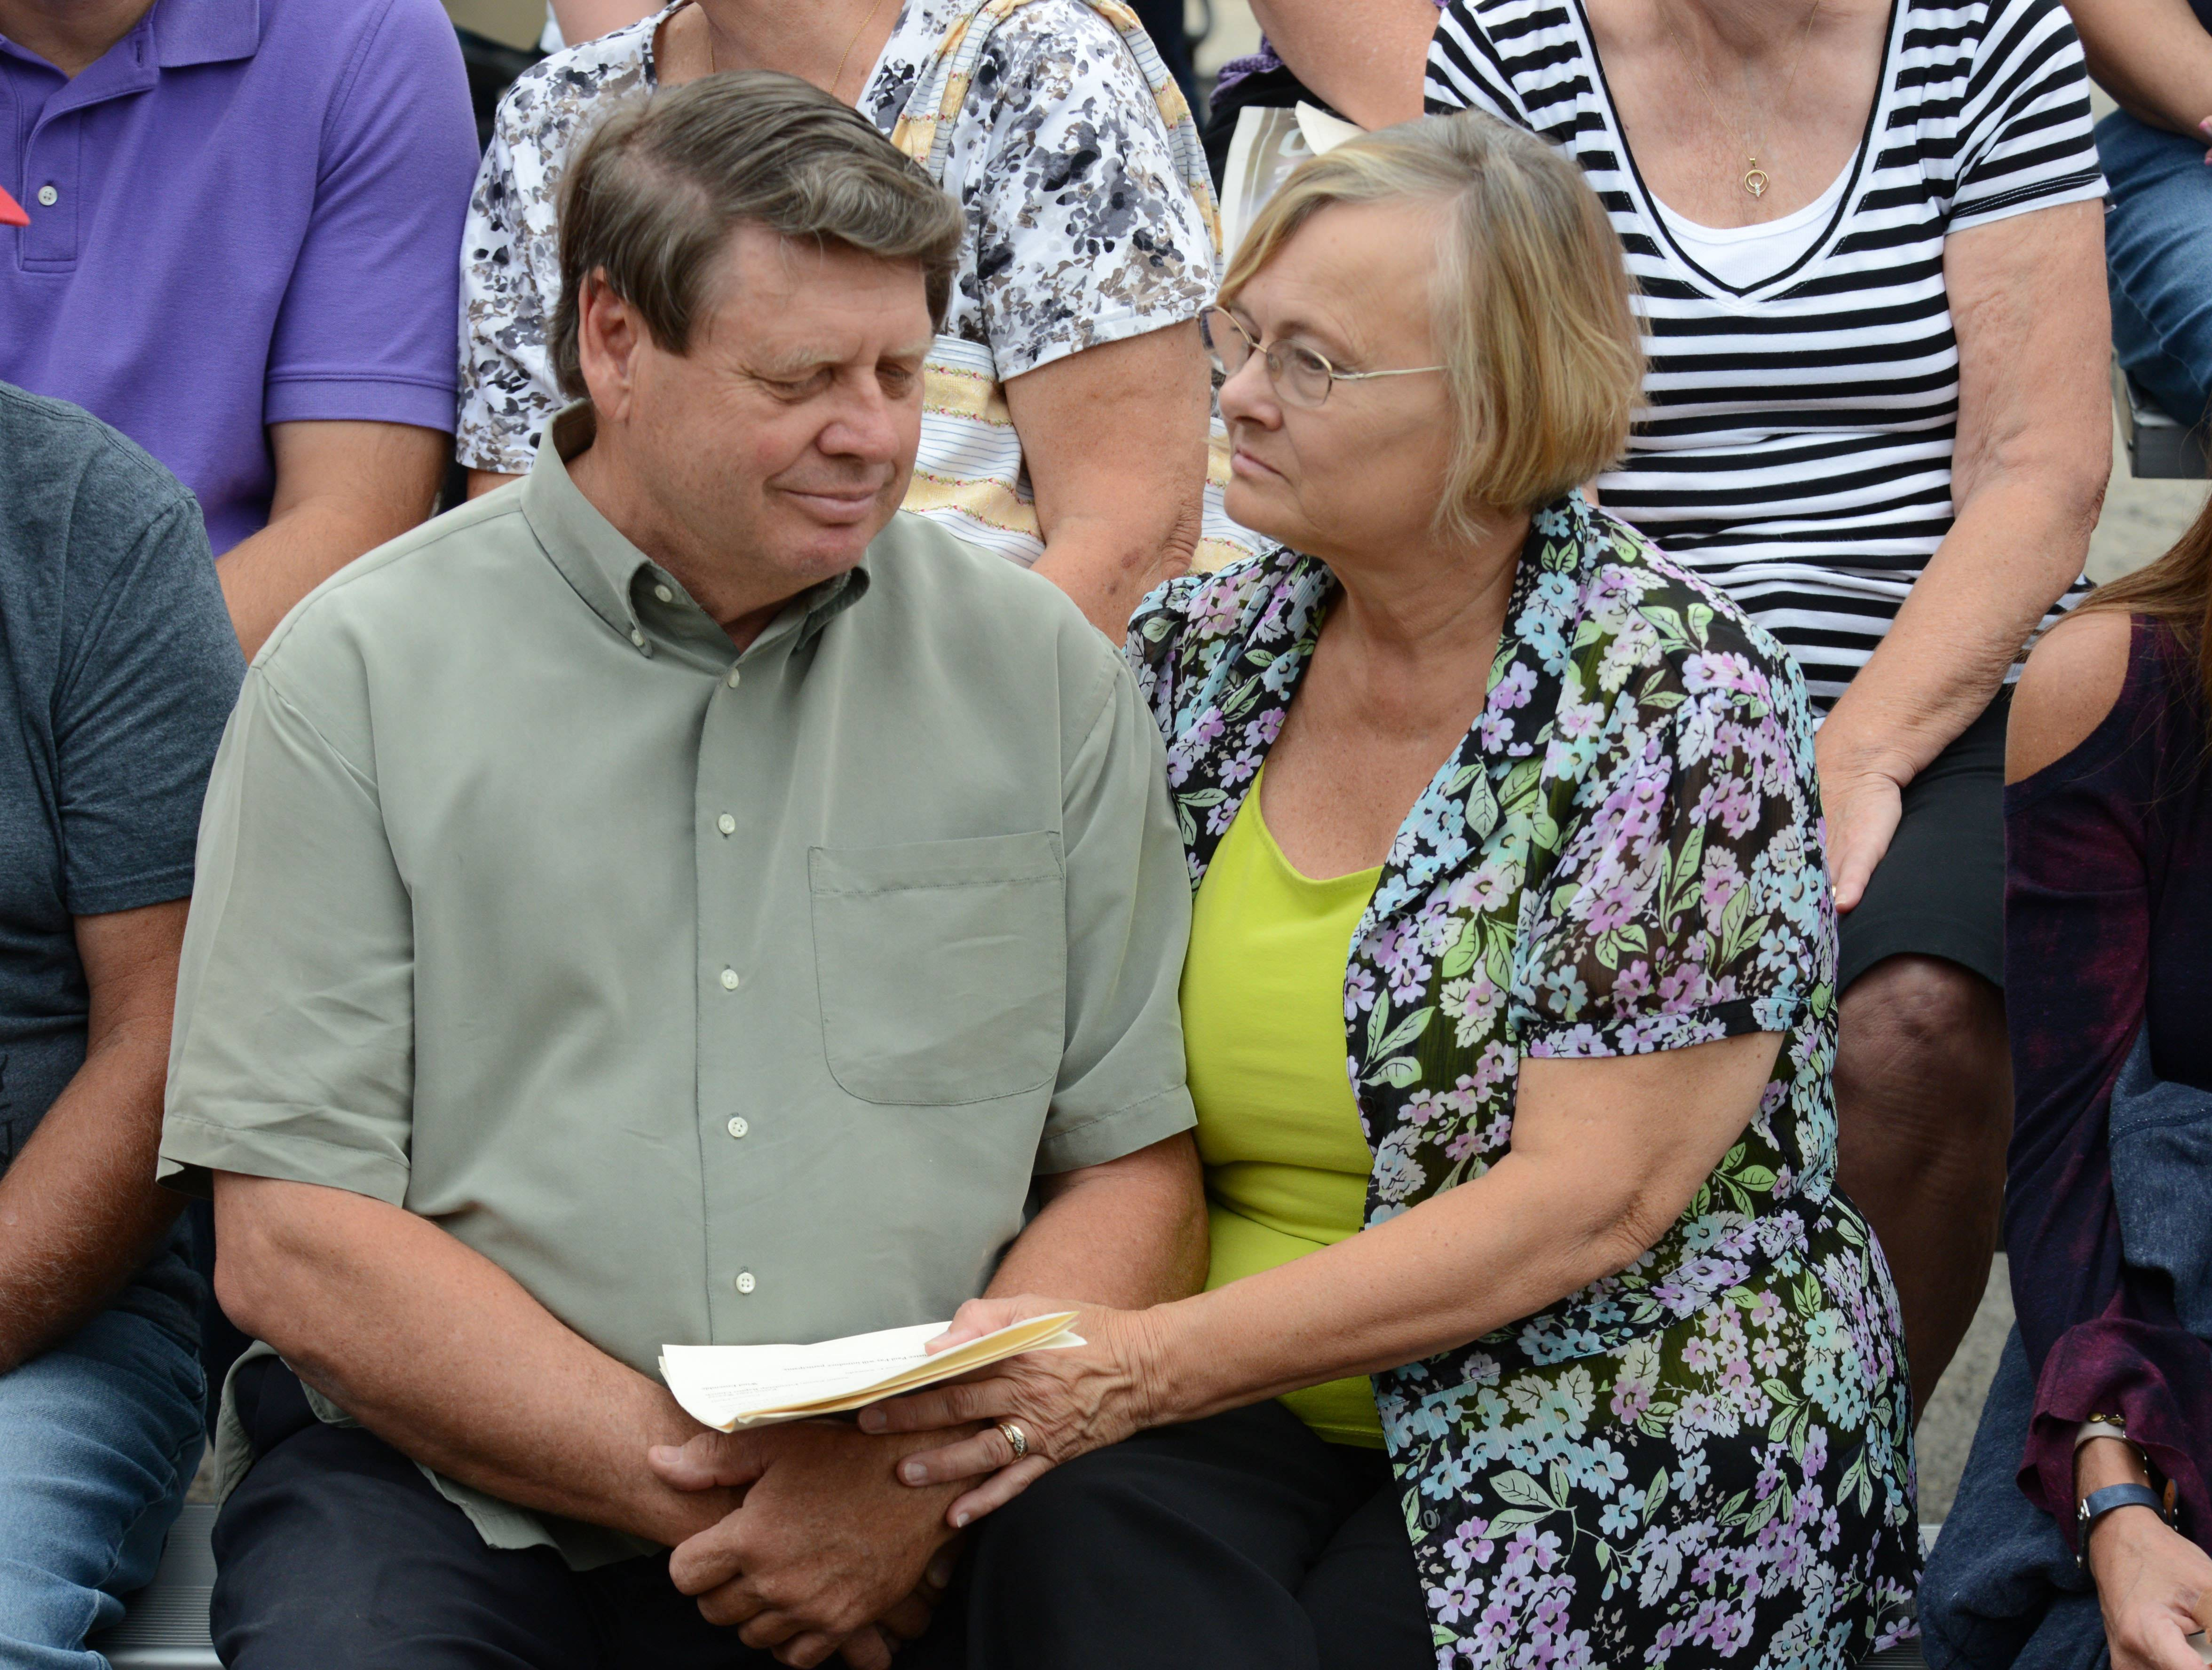 Judith Kachel comforts her husband Larry during a memorial for the 25th anniversary of the Plainfield-area tornado that killed 29 people, including Larry's brother, James.